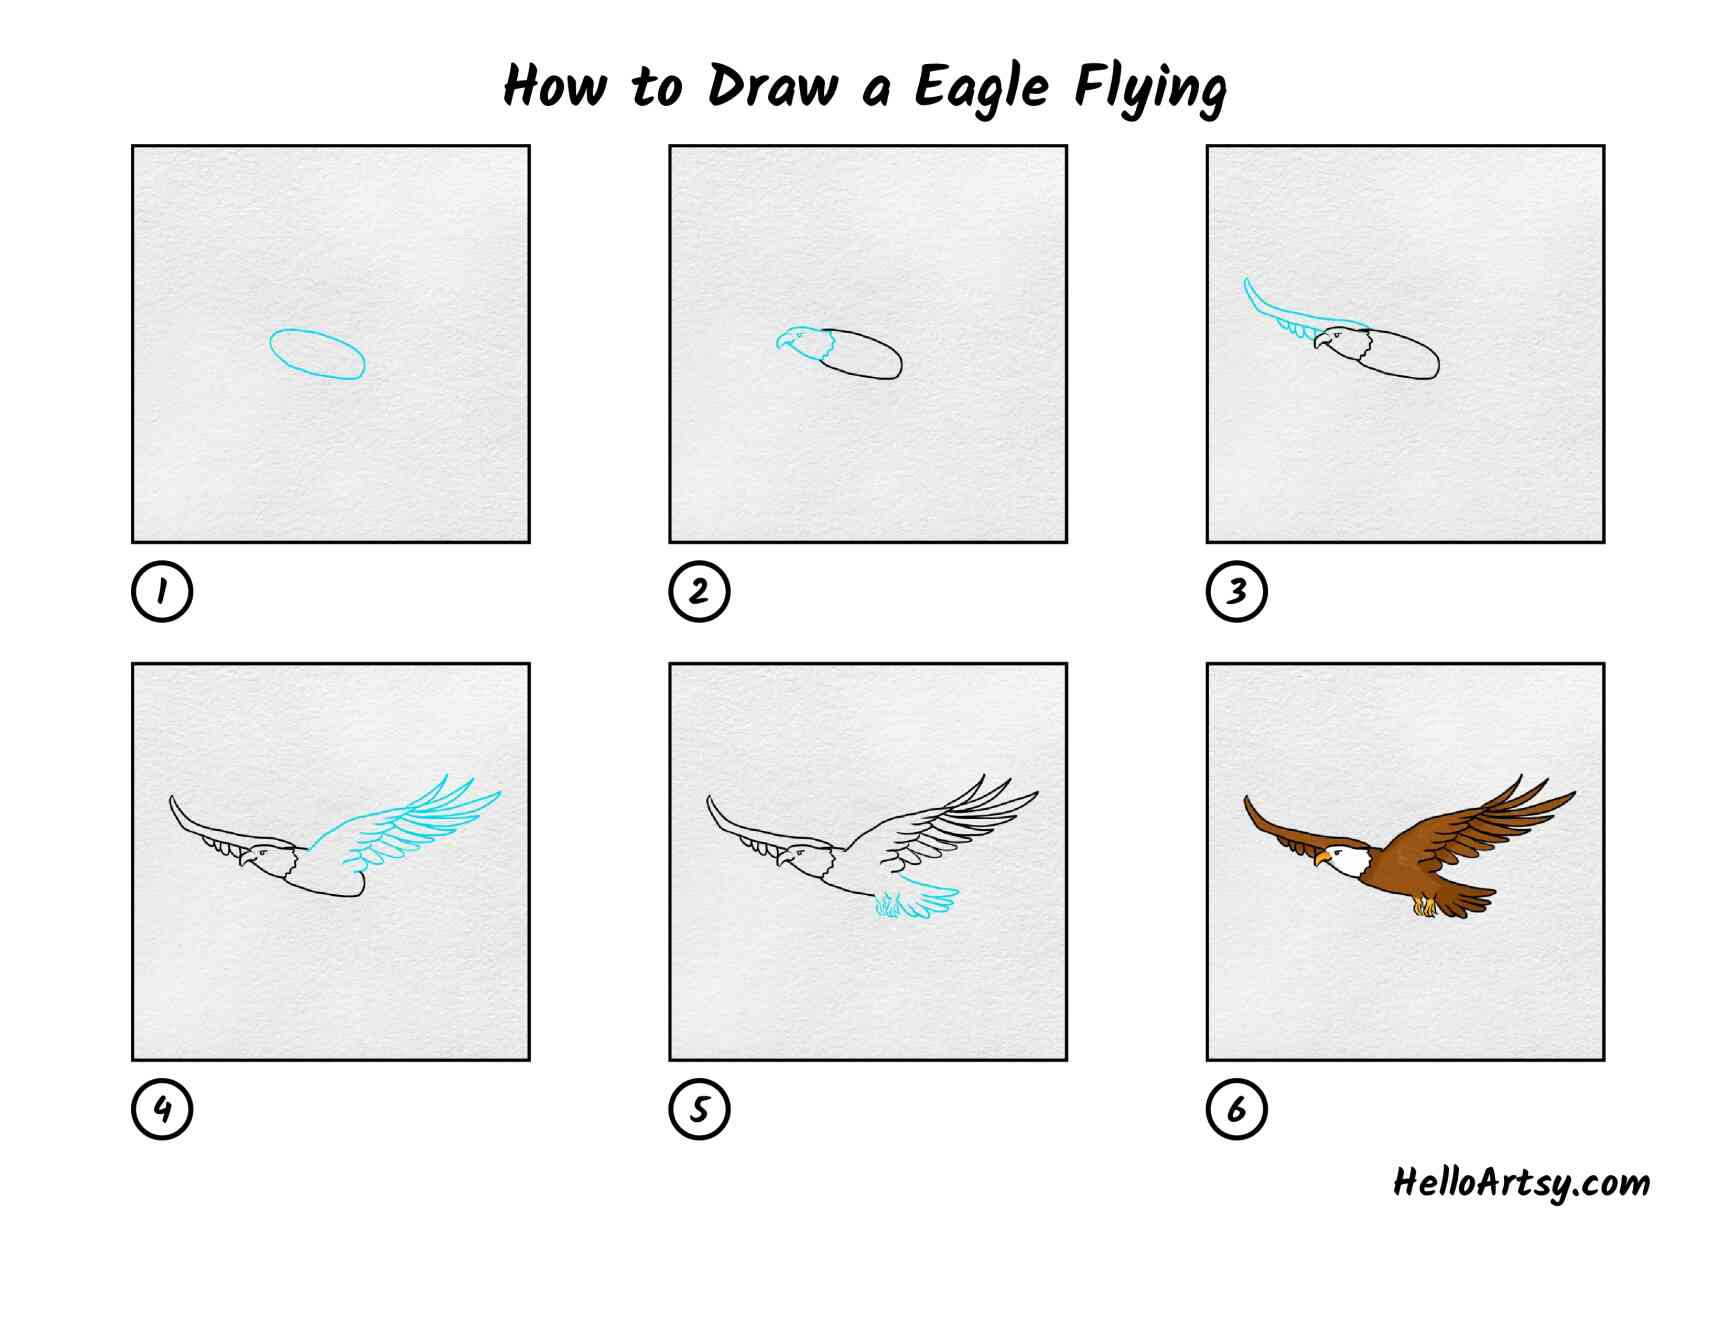 How To Draw A Eagle Flying: All Steps